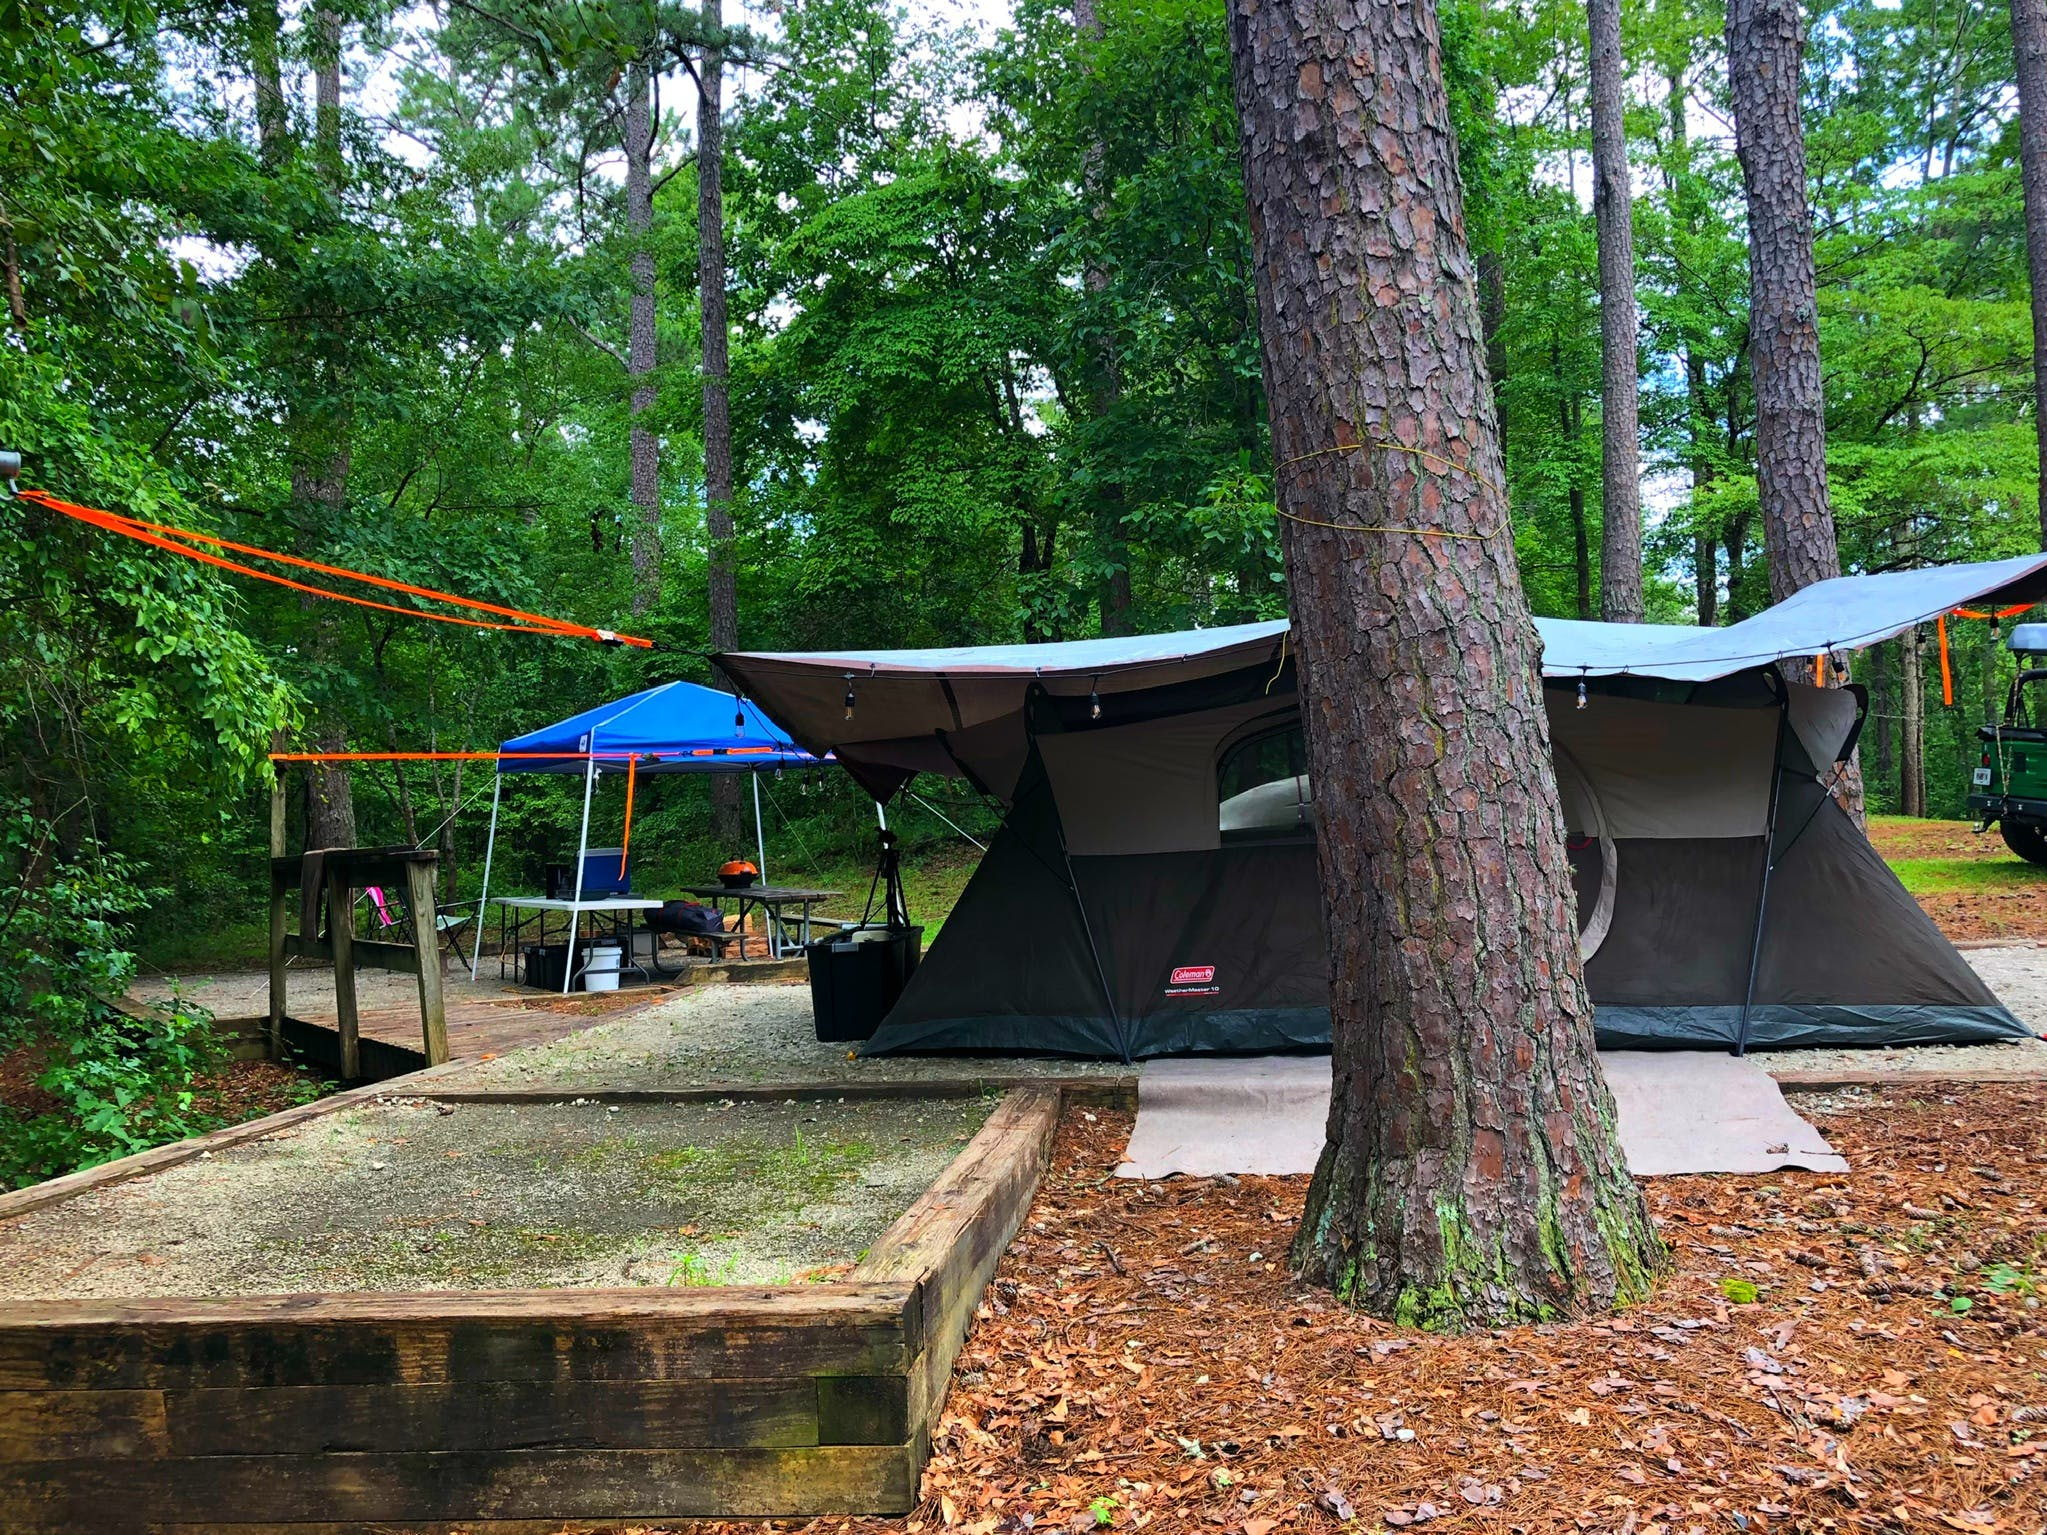 Georgia state park campgrounds with sewer hookups